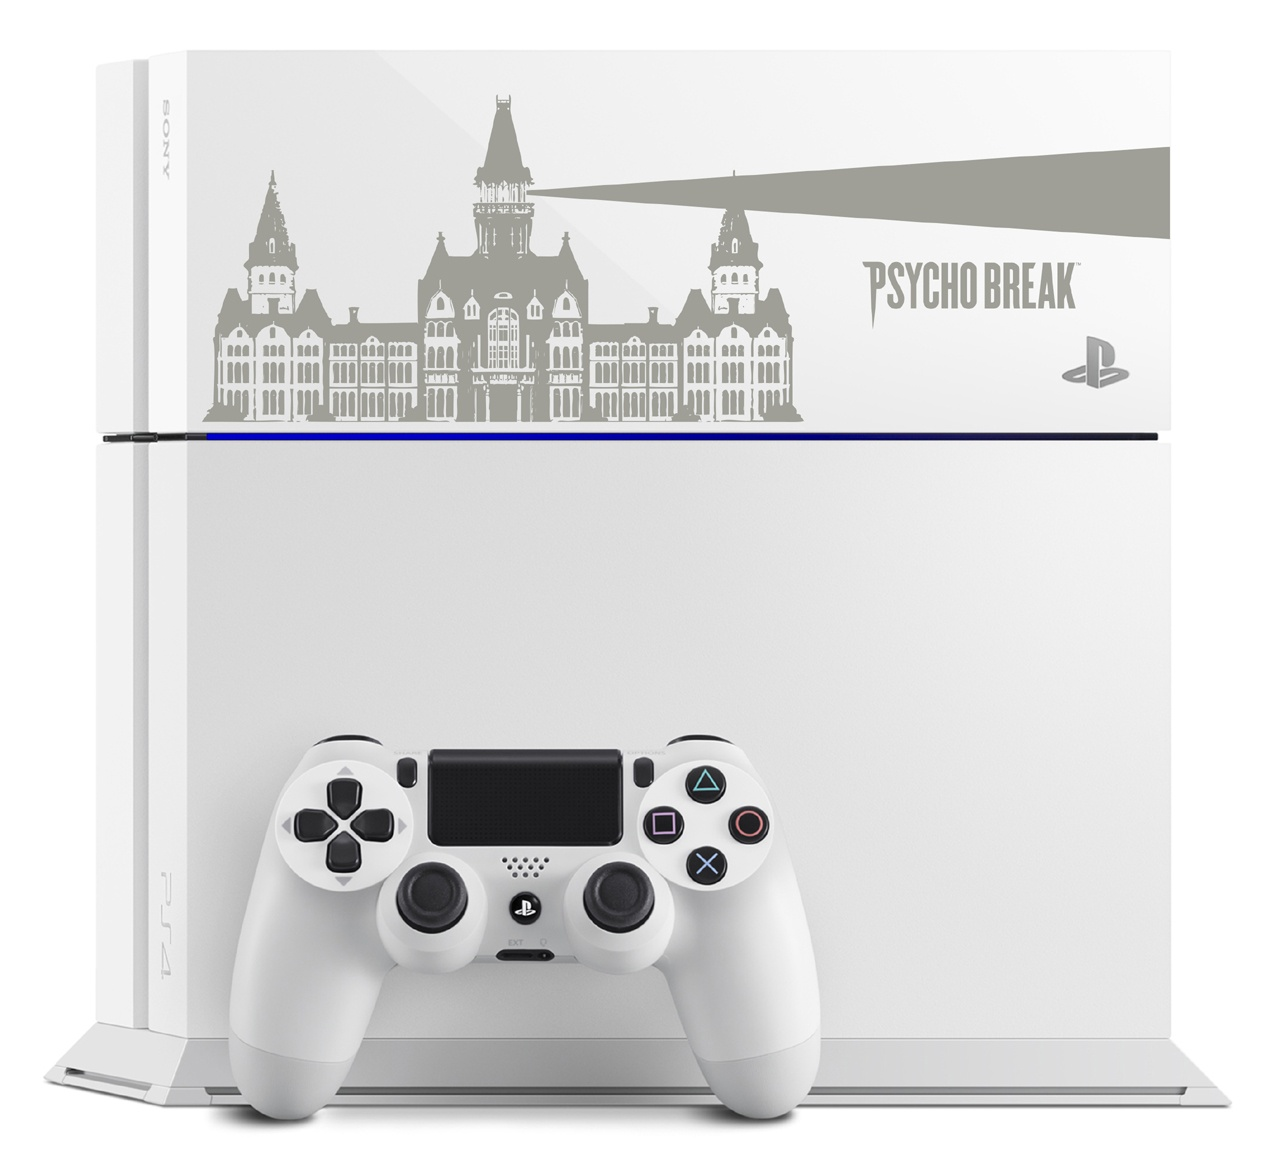 Custom Psycho Break PS4 console